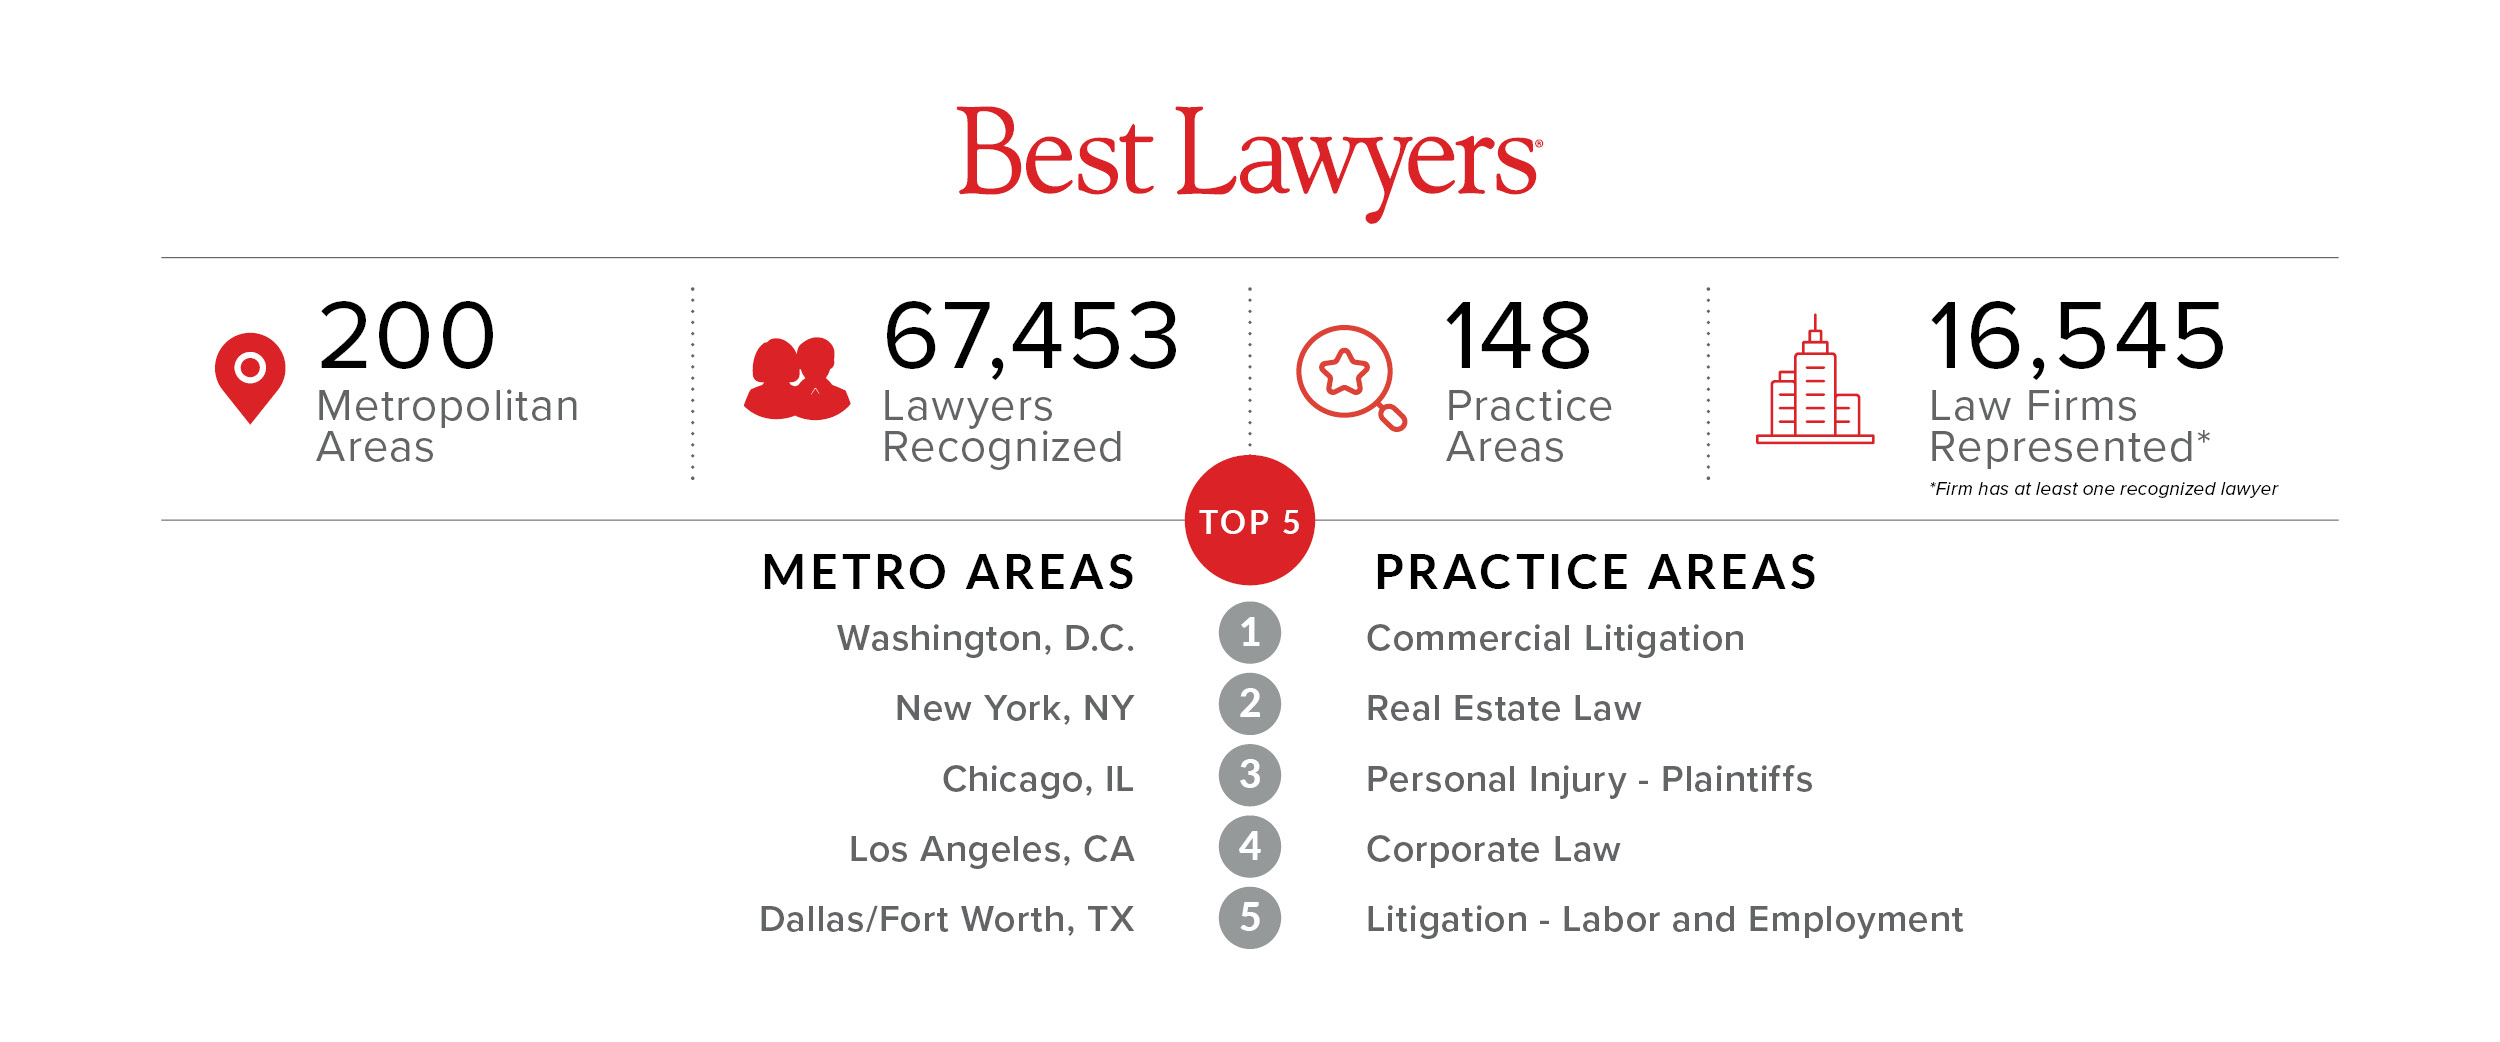 Best Lawyers 27th Edition Stats